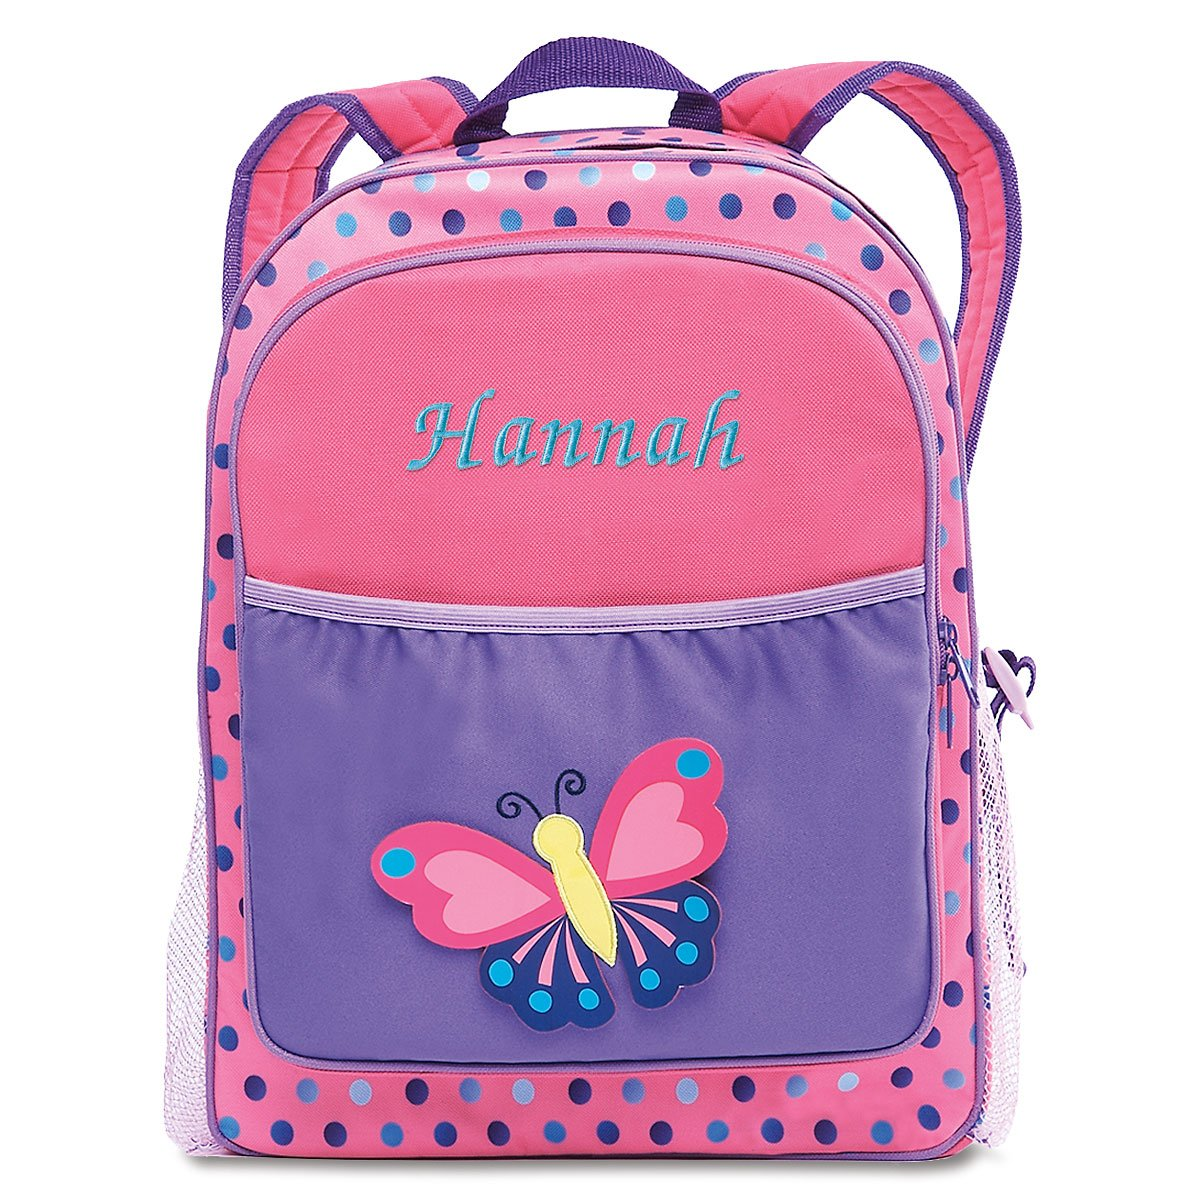 Butterfly kids personalized backpack lillian vernon kids backpacks jpg  1200x1200 Hello kitty rolling backpack butterfly 37360b1c5ba55